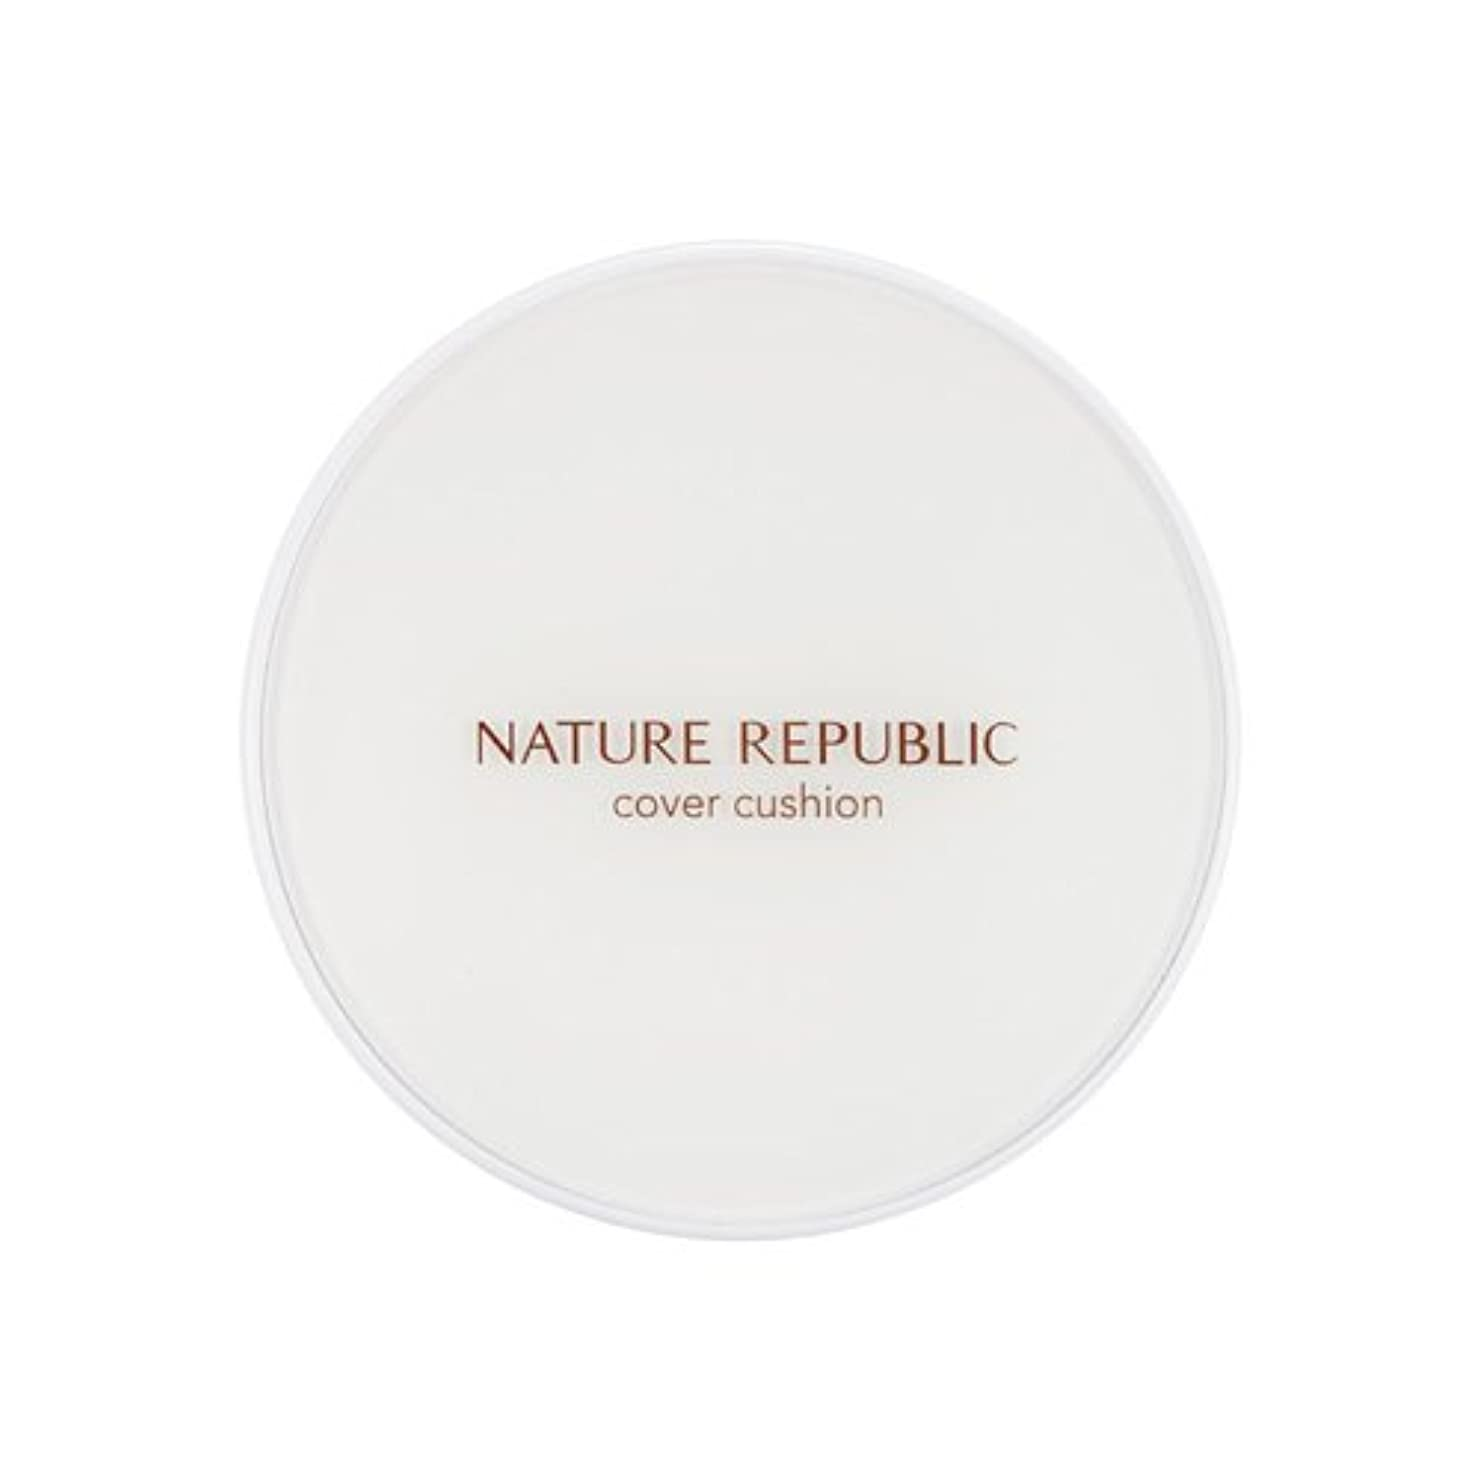 死傷者改善するシュート[Outlet] NATURE REPUBLIC Nature Origin Cover Cushion (01 Light beige) (SPF50+ PA+++) [並行輸入品]